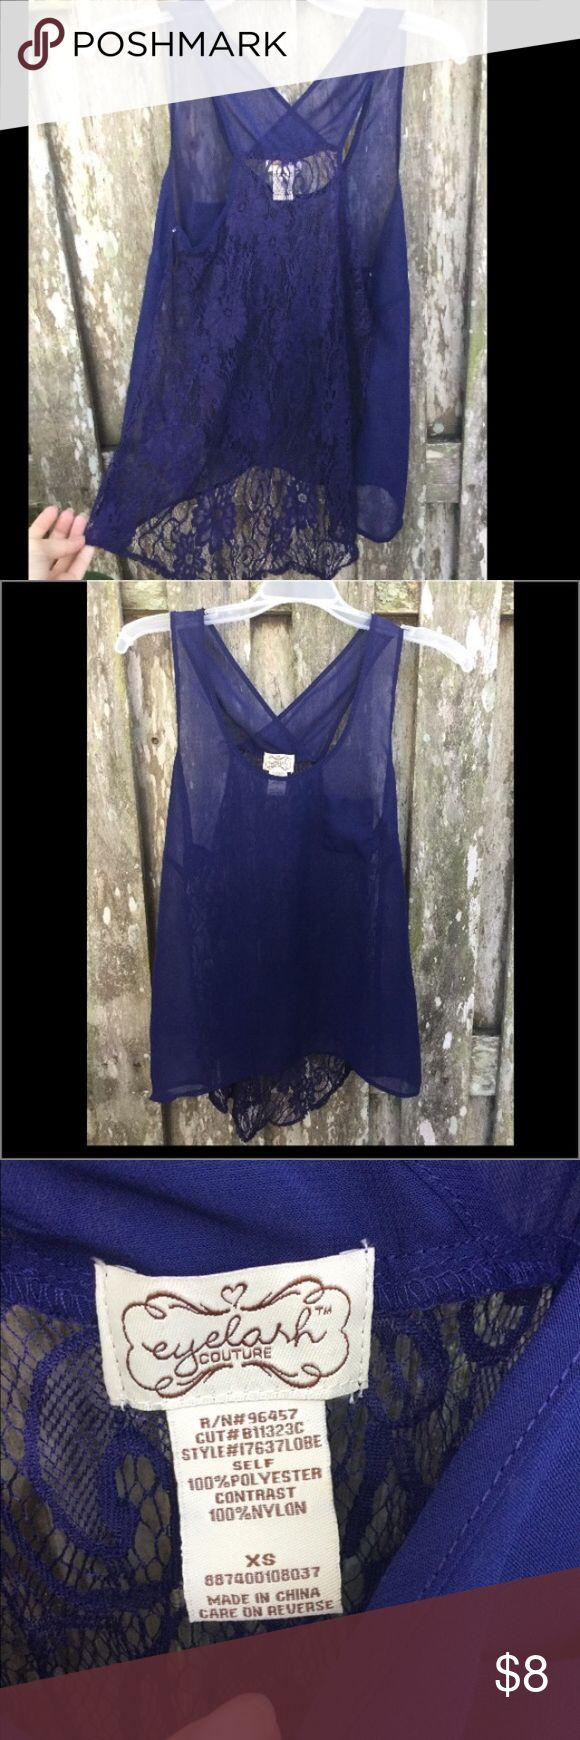 Sheer Navy blue tank top Sorry it doesn't photograph well! It has a lacy back, with a cris-cross straps that expose your shoulders. Sheer. Tops Blouses